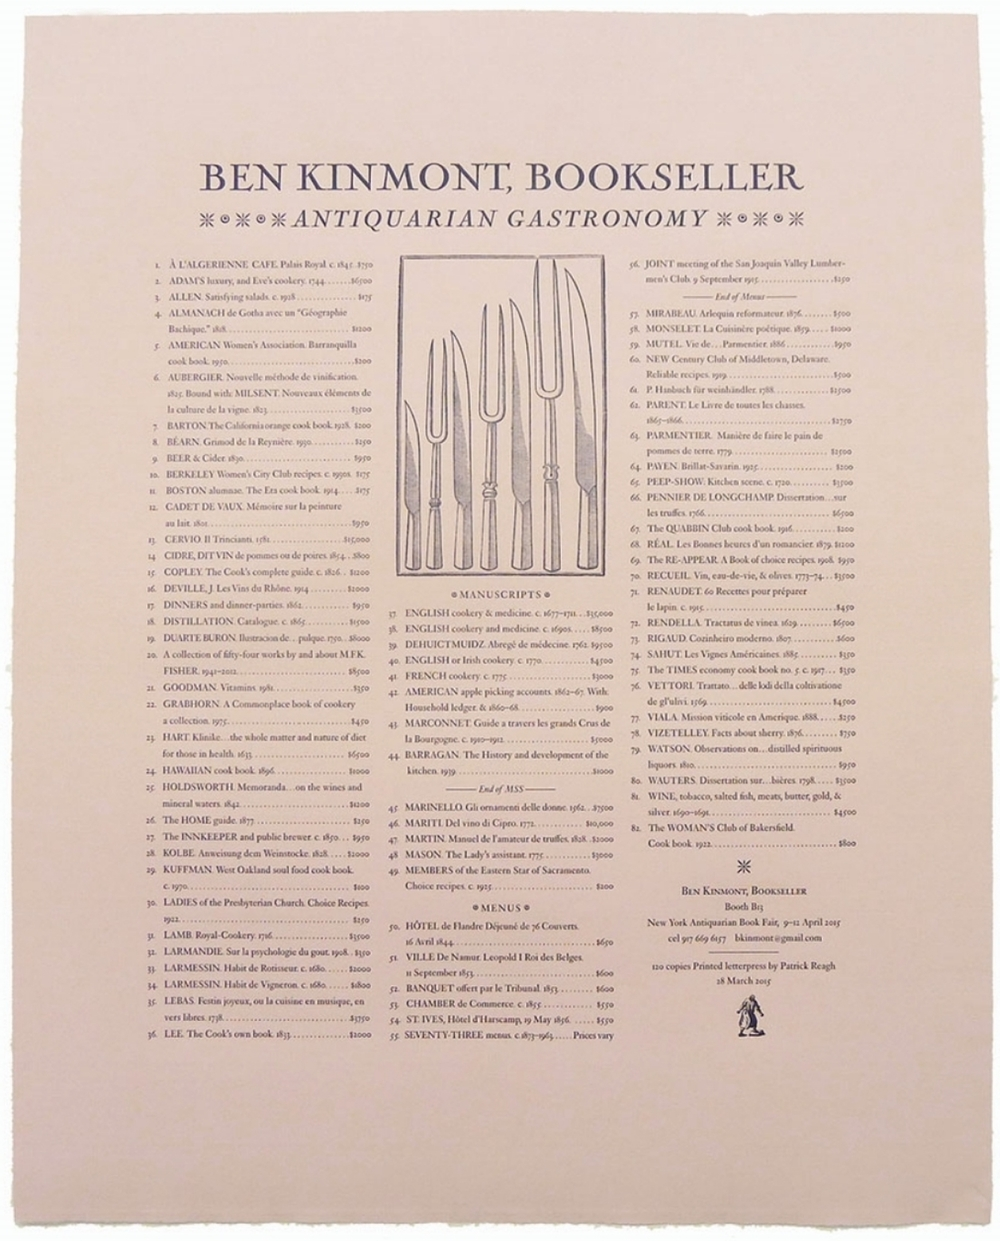 Broadside for Ben Kinmont Bookseller